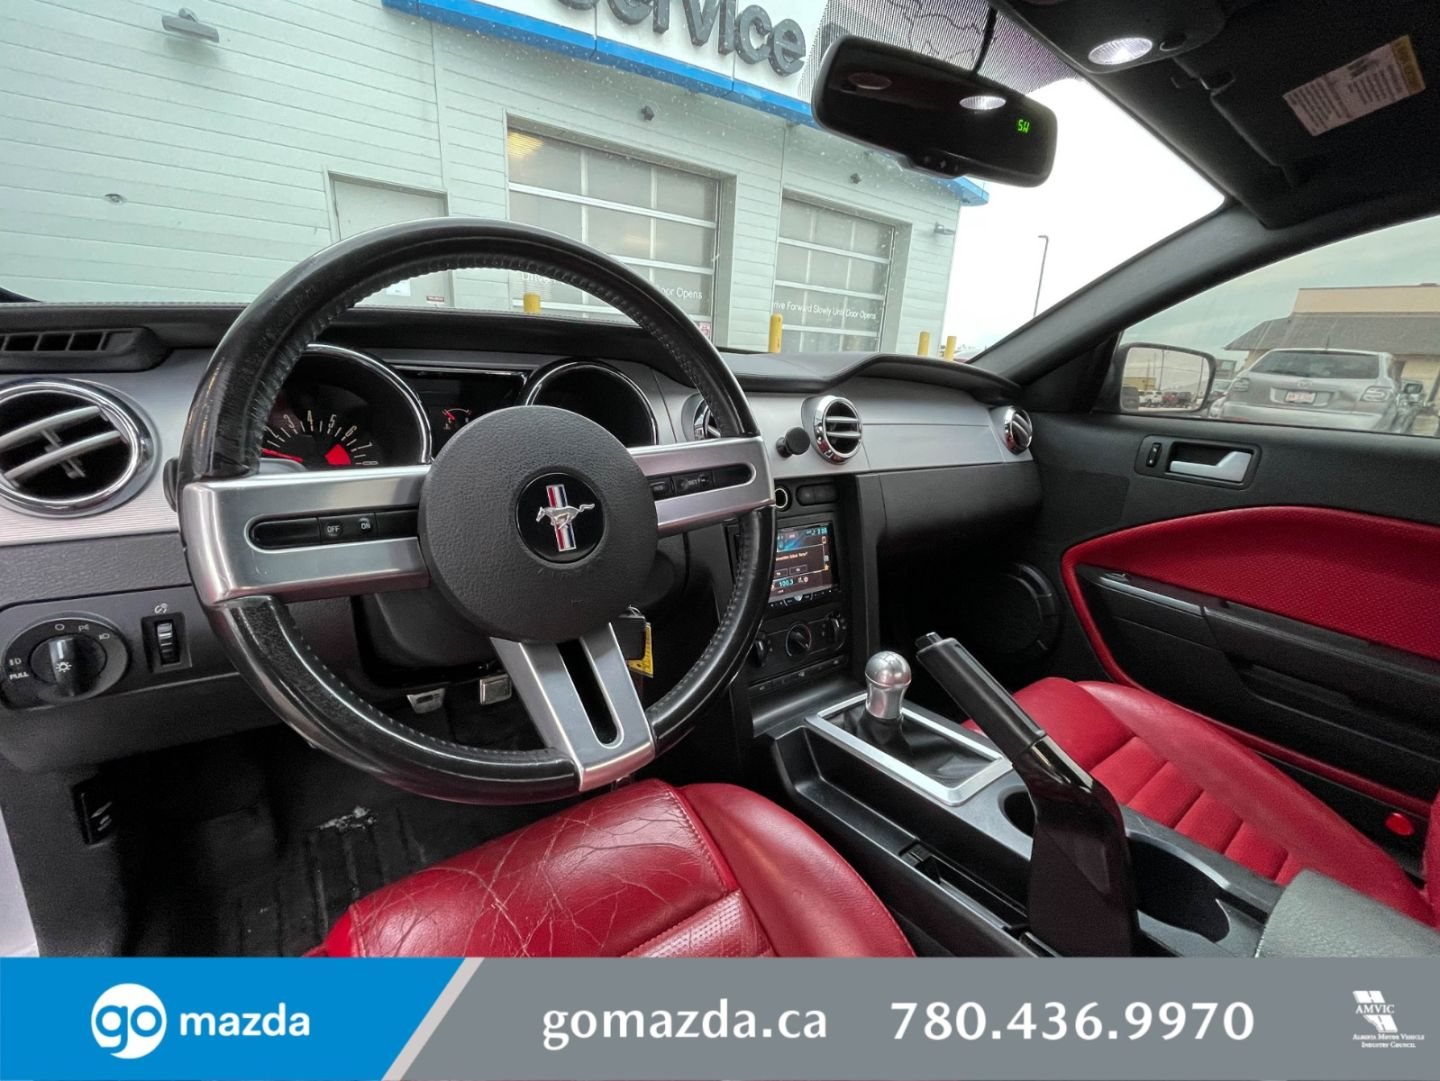 2007 Ford Mustang GT for sale in Edmonton, Alberta